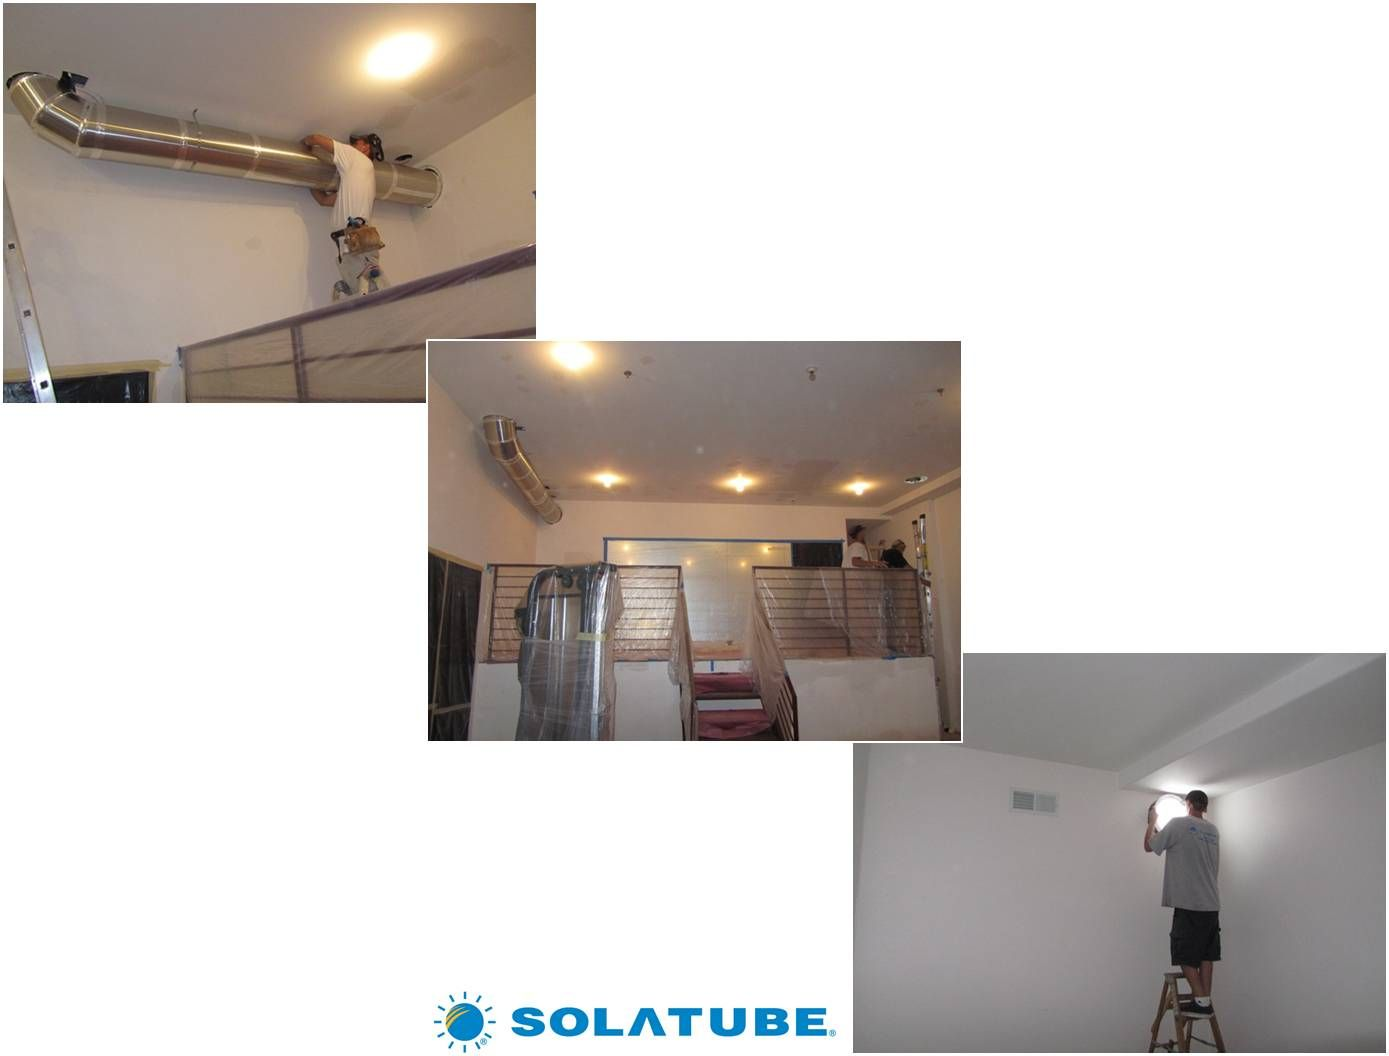 This Tube Brings Natural Light From Outside Into The Interior Of This Home Solatube Is The Industry Leader For Tubular Tubular Skylights Light Ceiling Lights